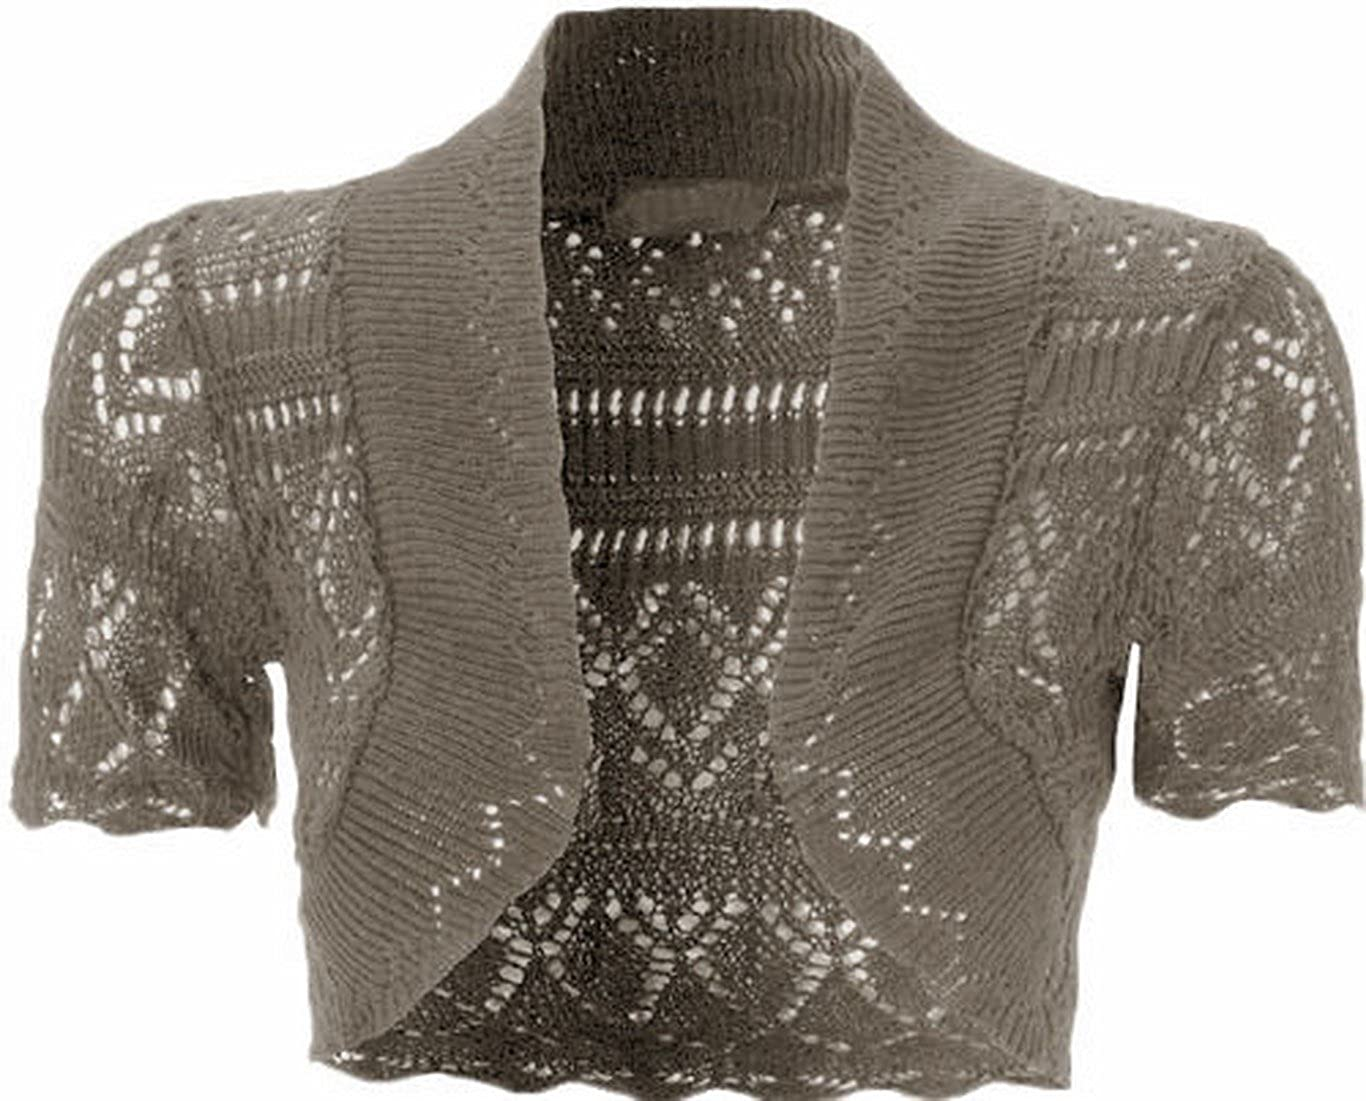 4e45dcc4f80 Womens Knitted Bolero Shrug Short Sleeve Crochet Shrug (Mocha) at Amazon  Women s Clothing store